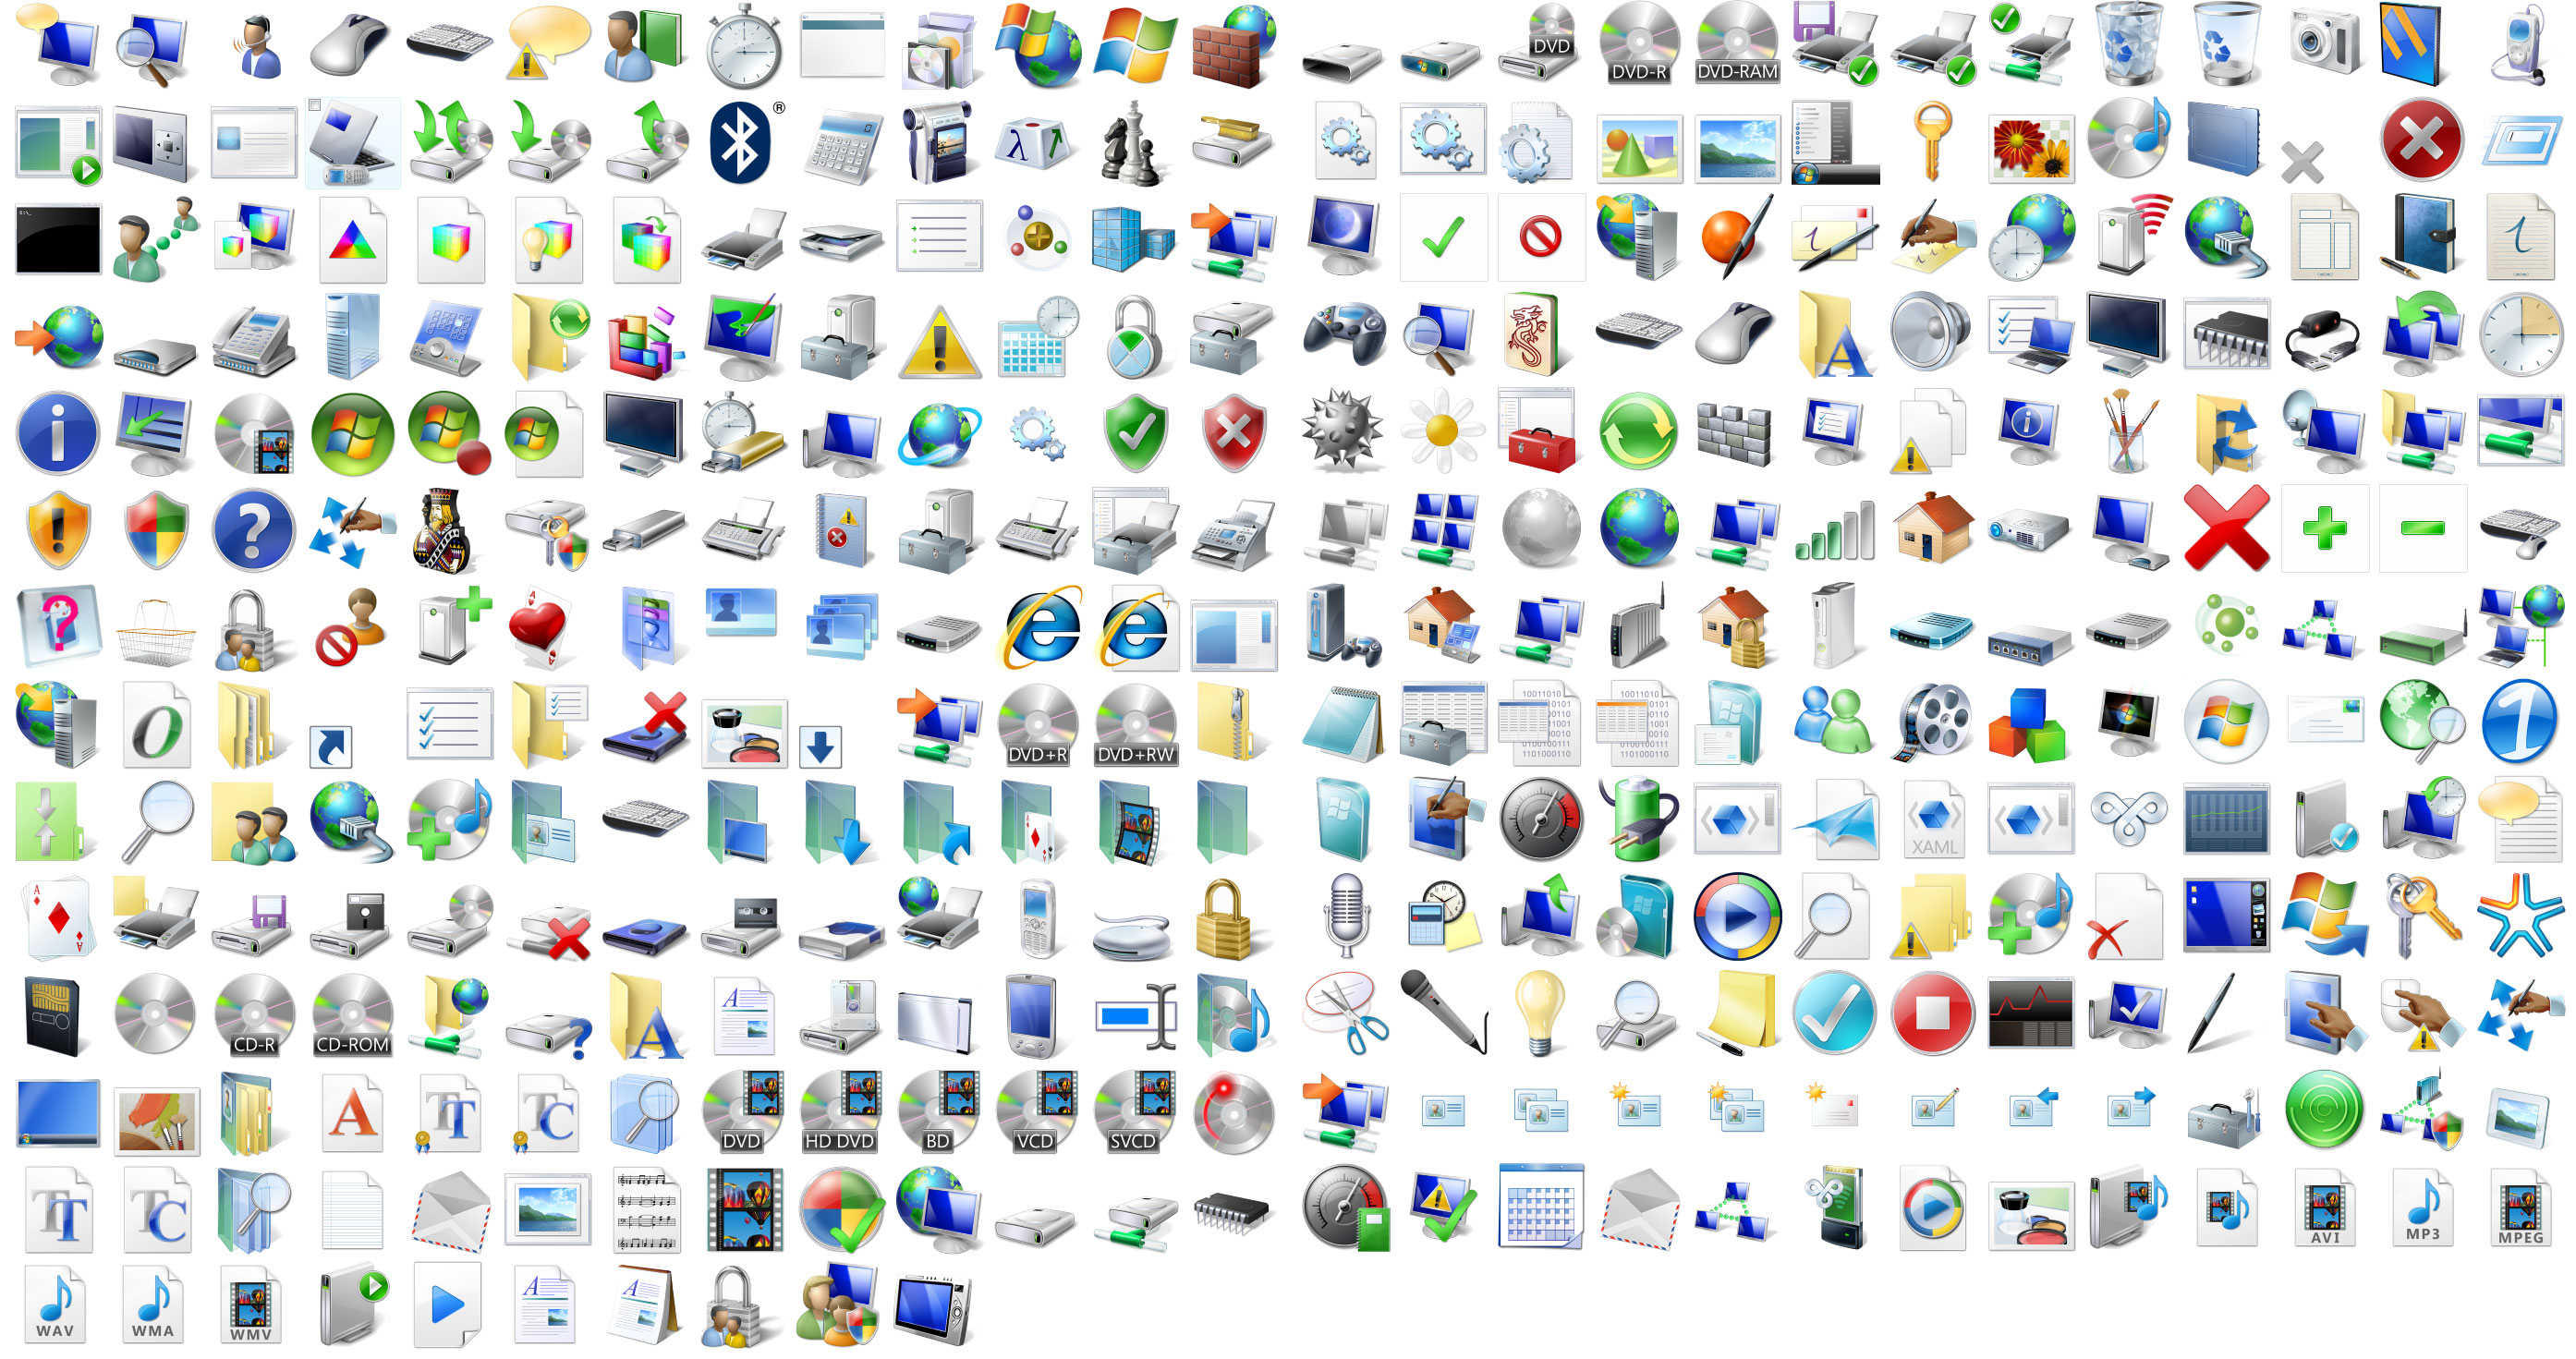 icons on windows xp: